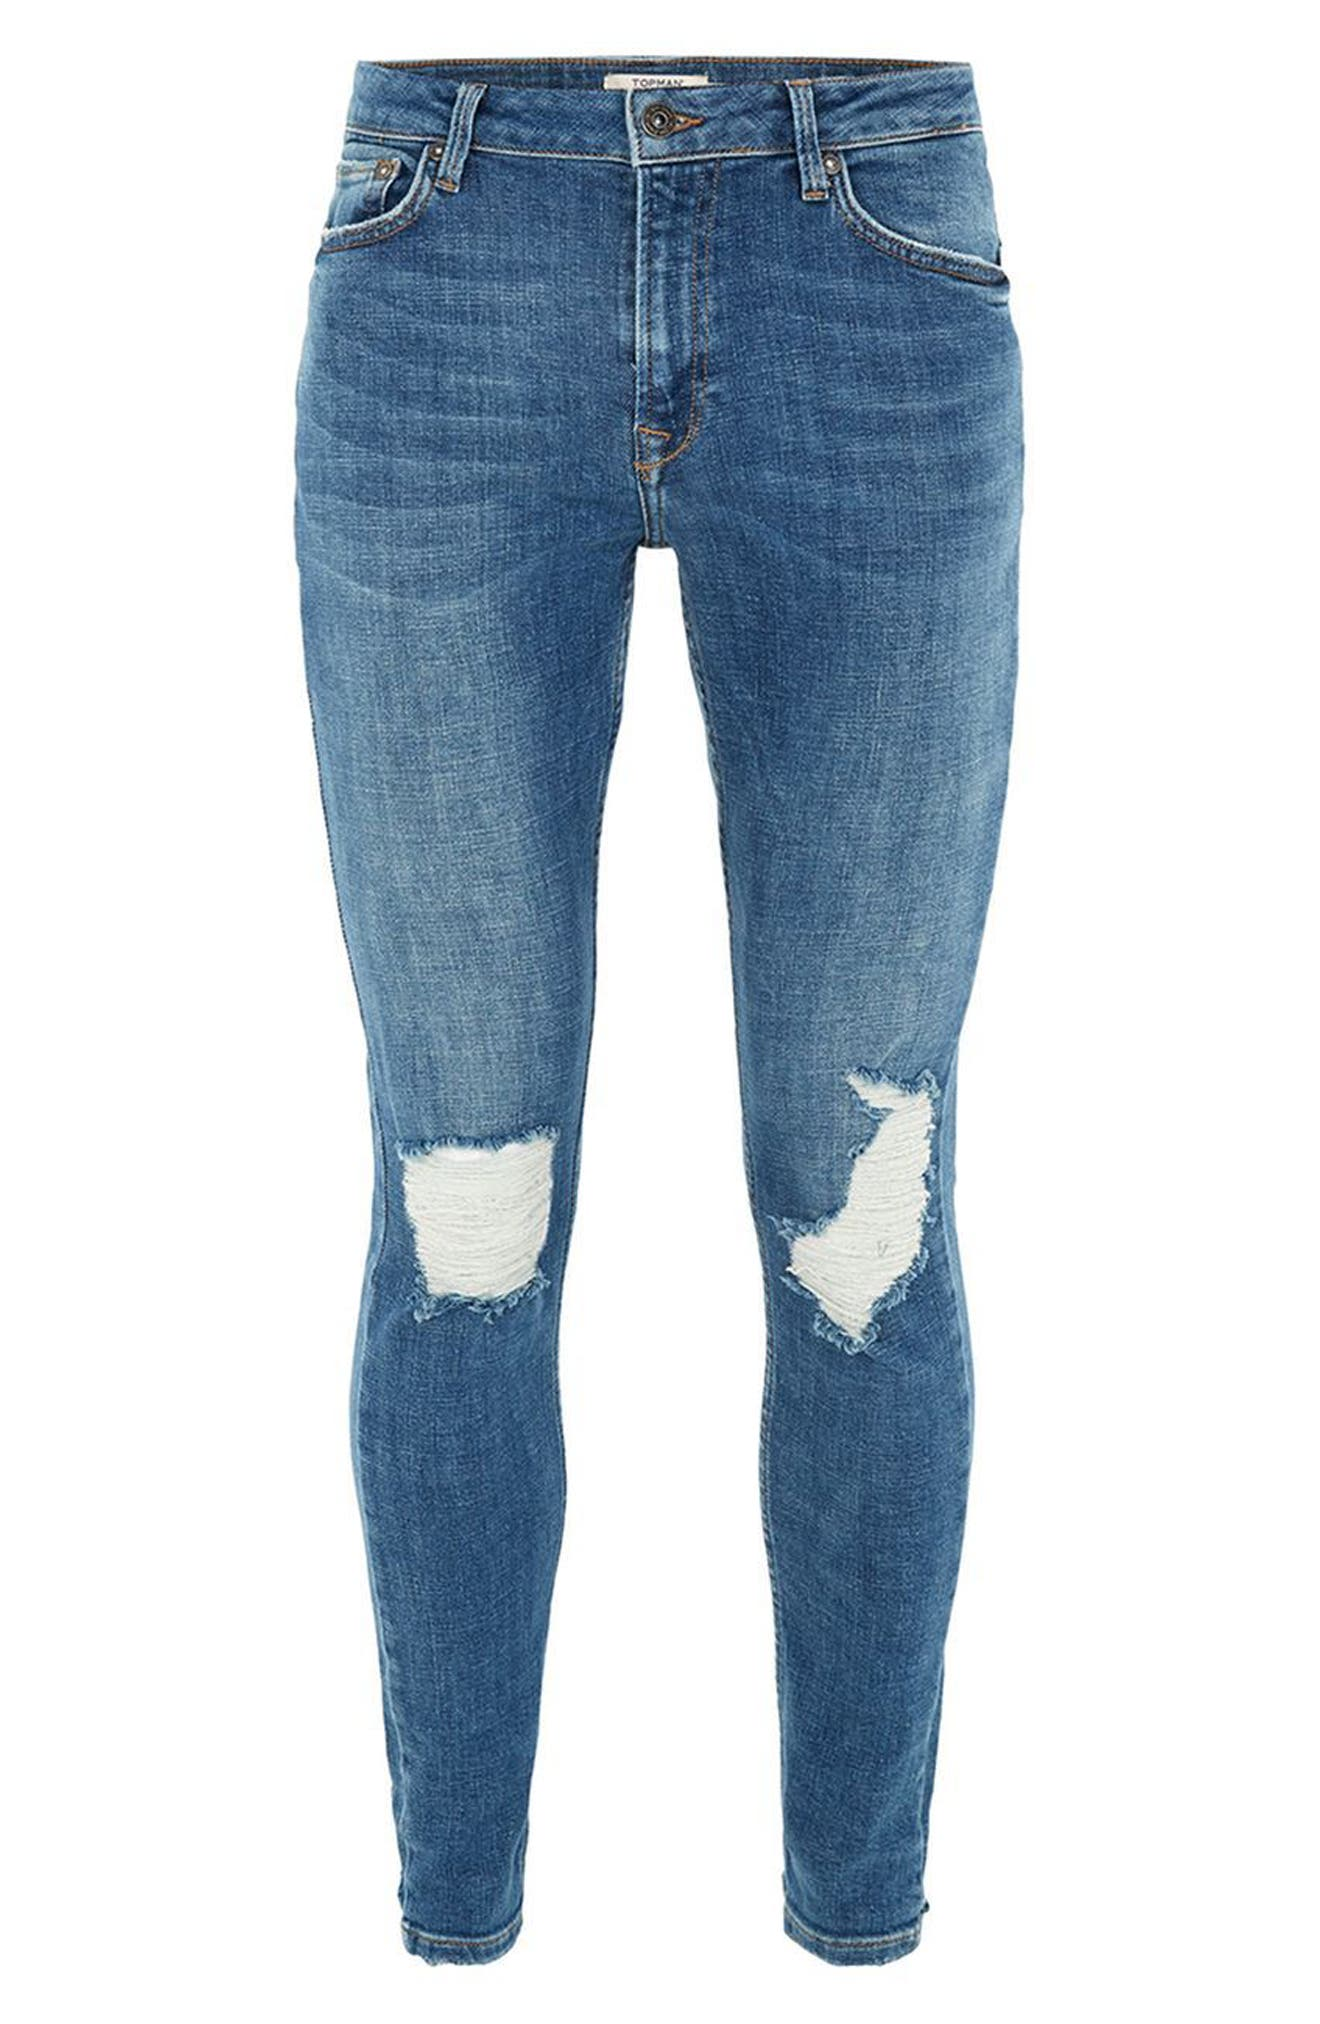 Arthur Ripped Stretch Skinny Jeans,                             Alternate thumbnail 3, color,                             400